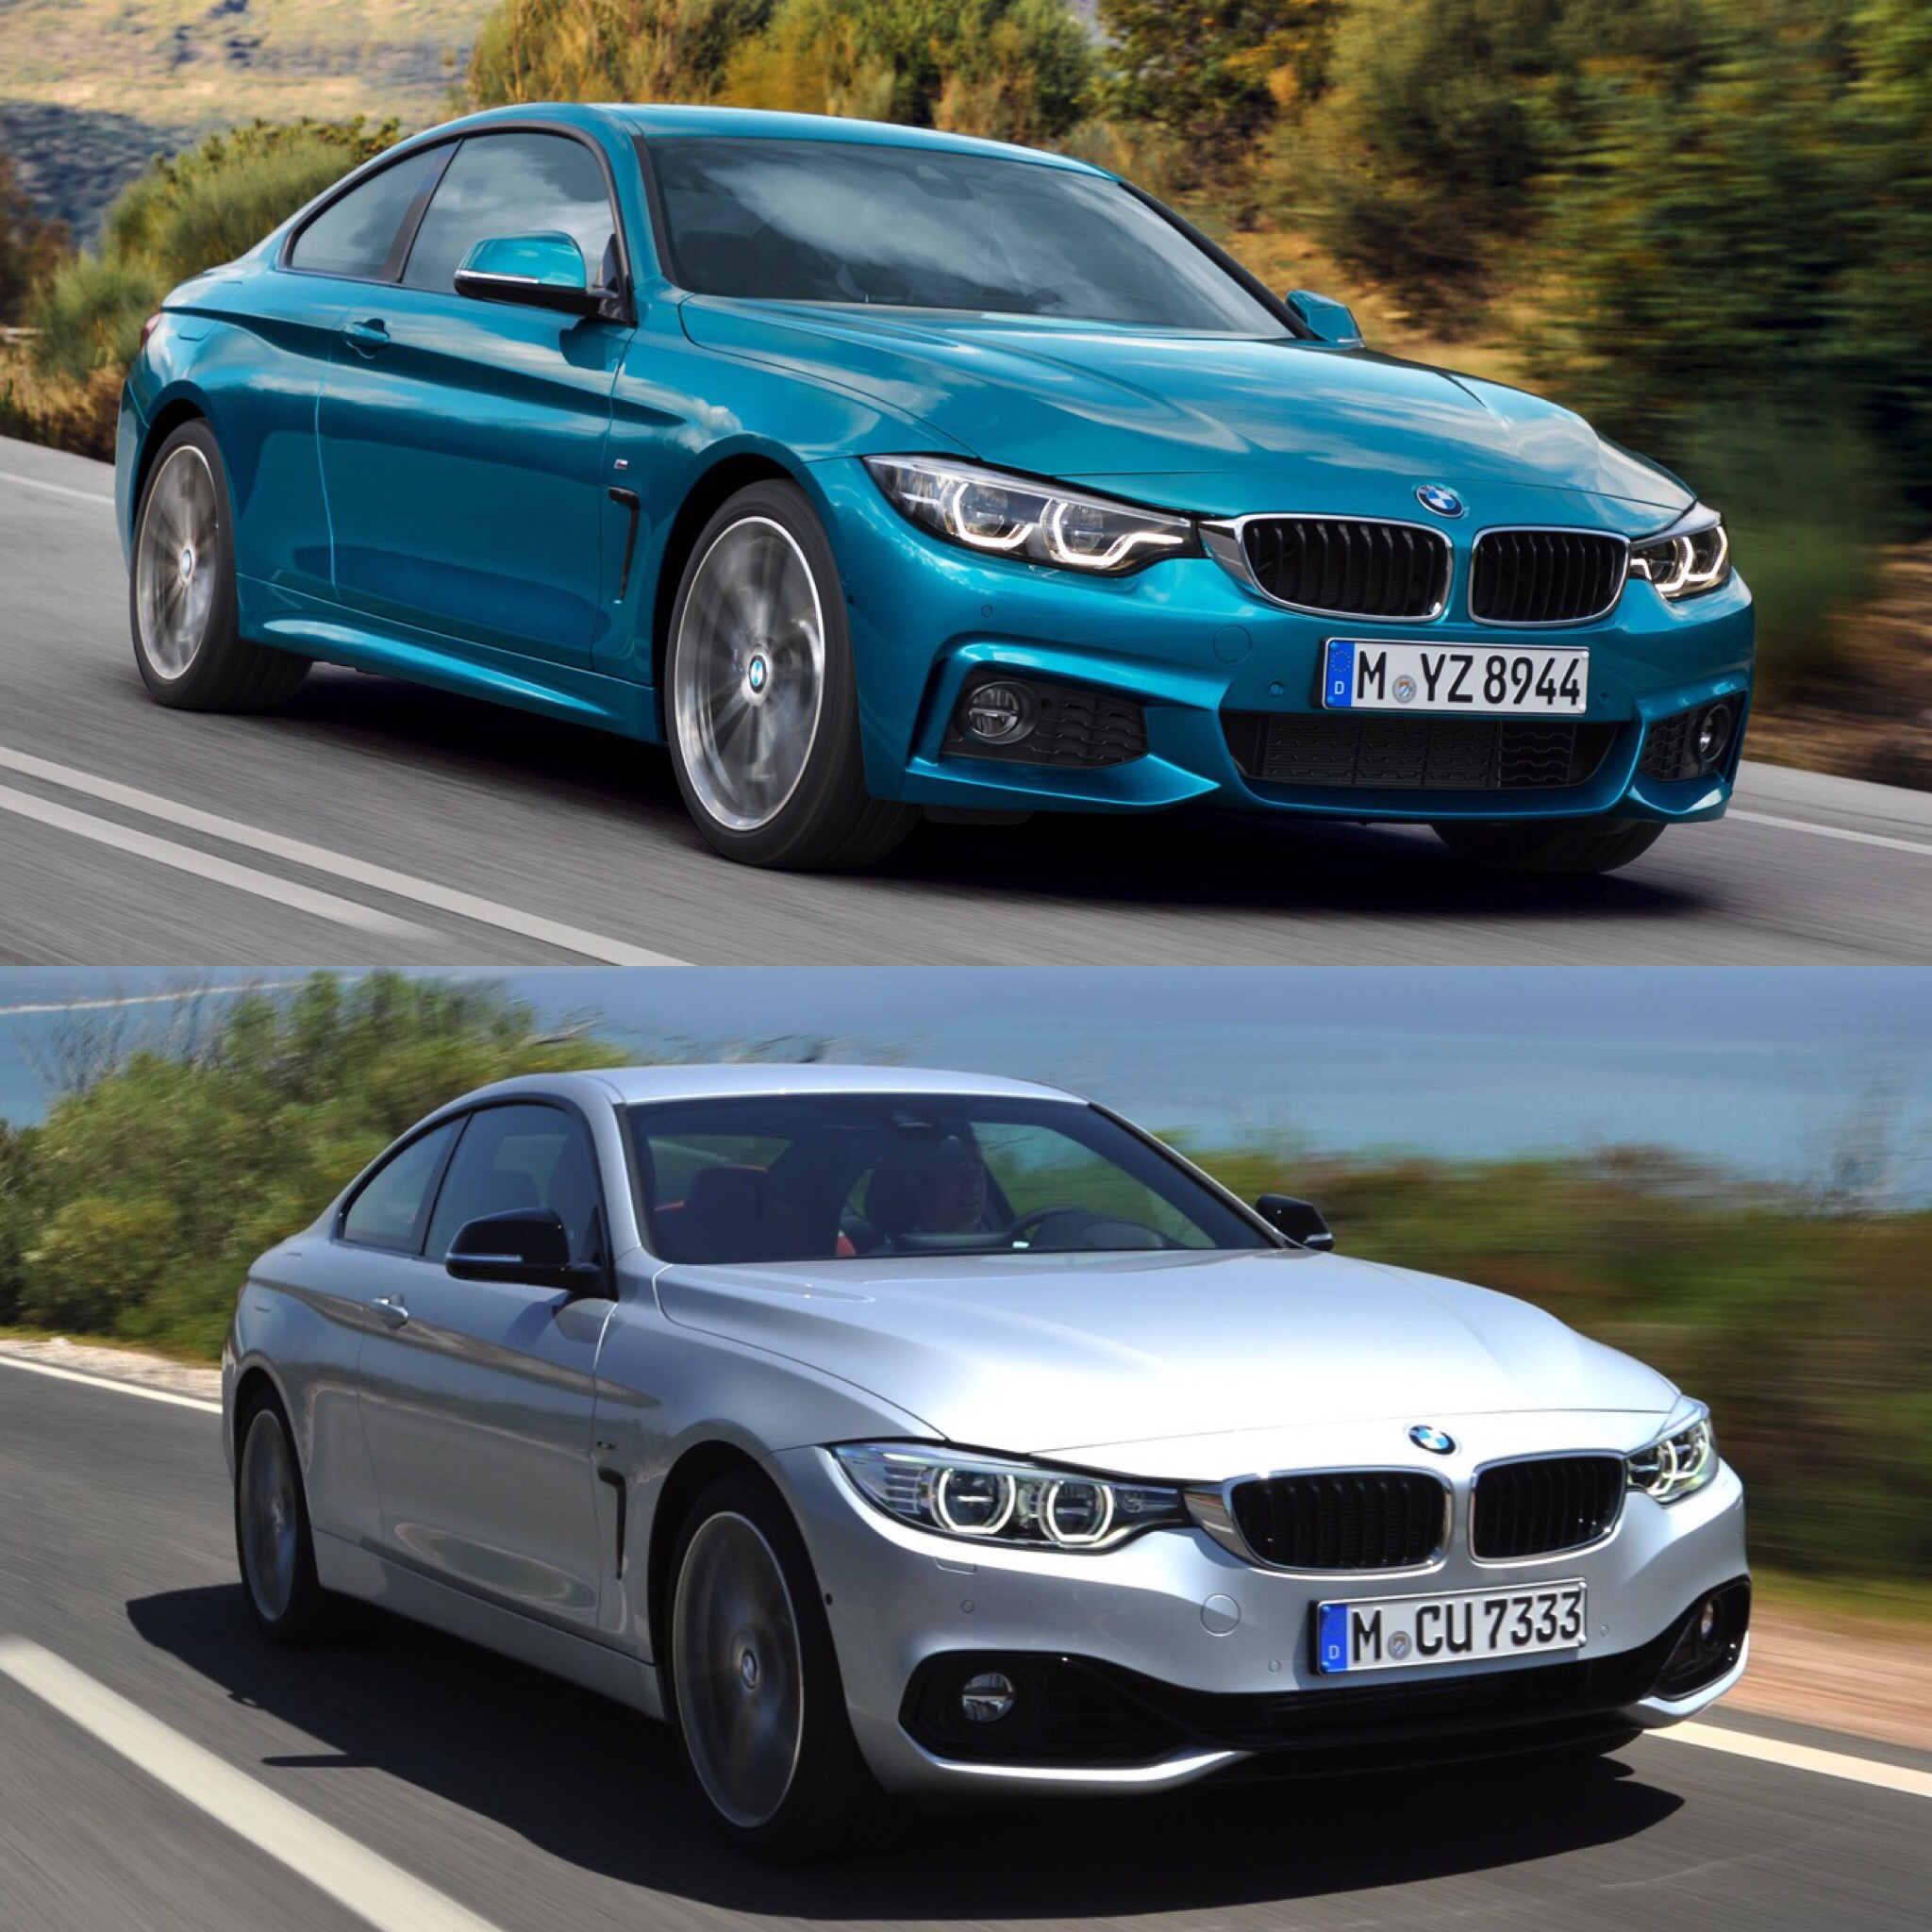 Photo Comparison: BMW 4 Series Facelift Vs BMW 4 Series